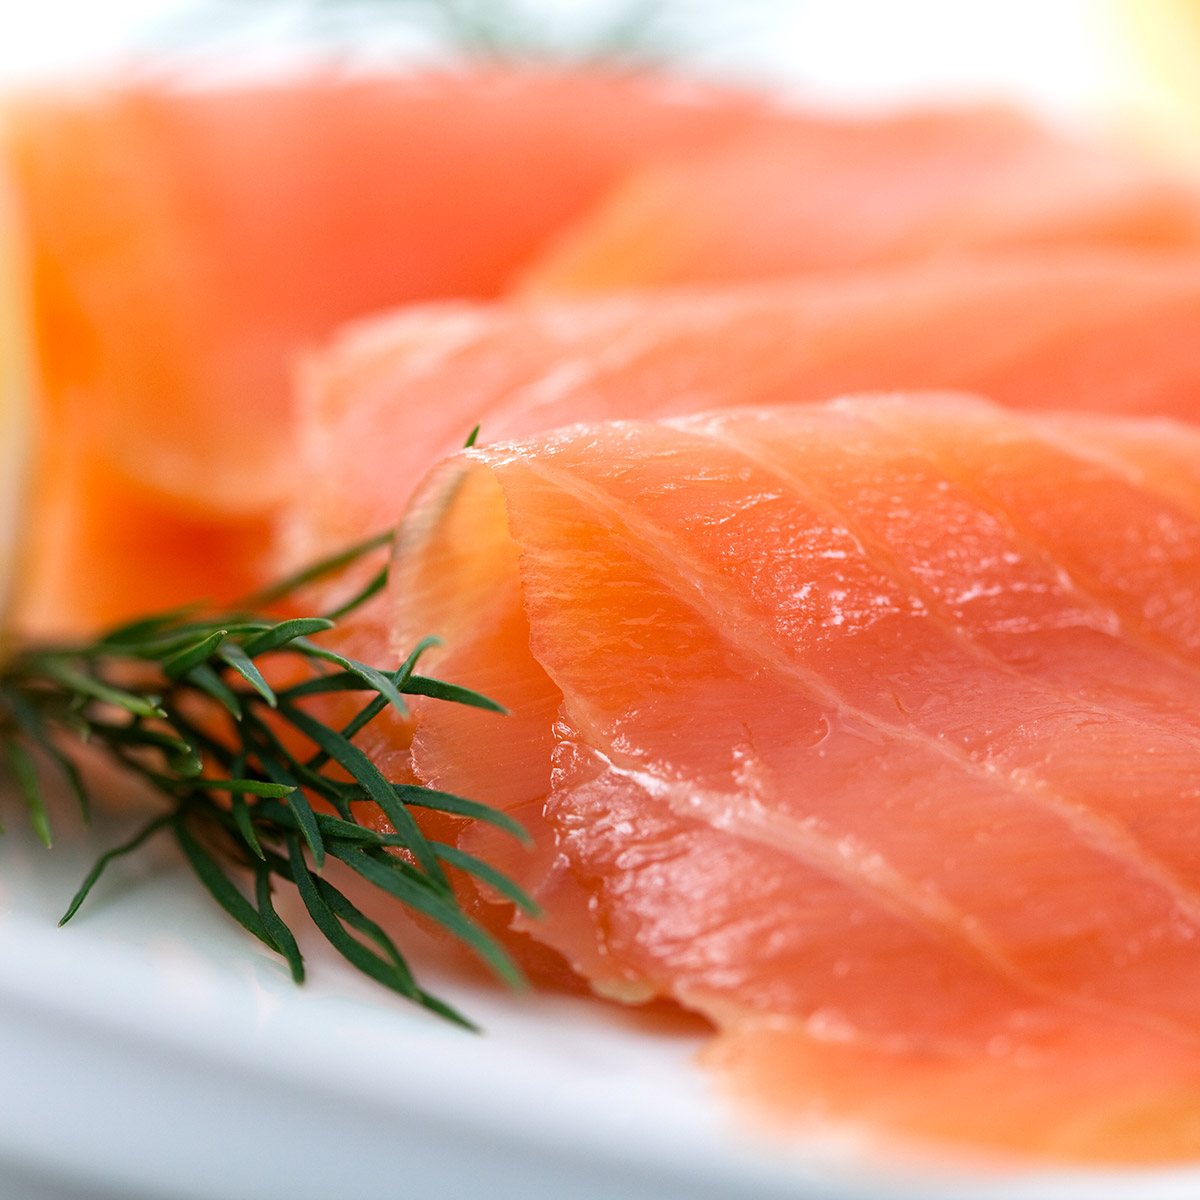 Chardonnay Food suggestion - Smoked Salmon